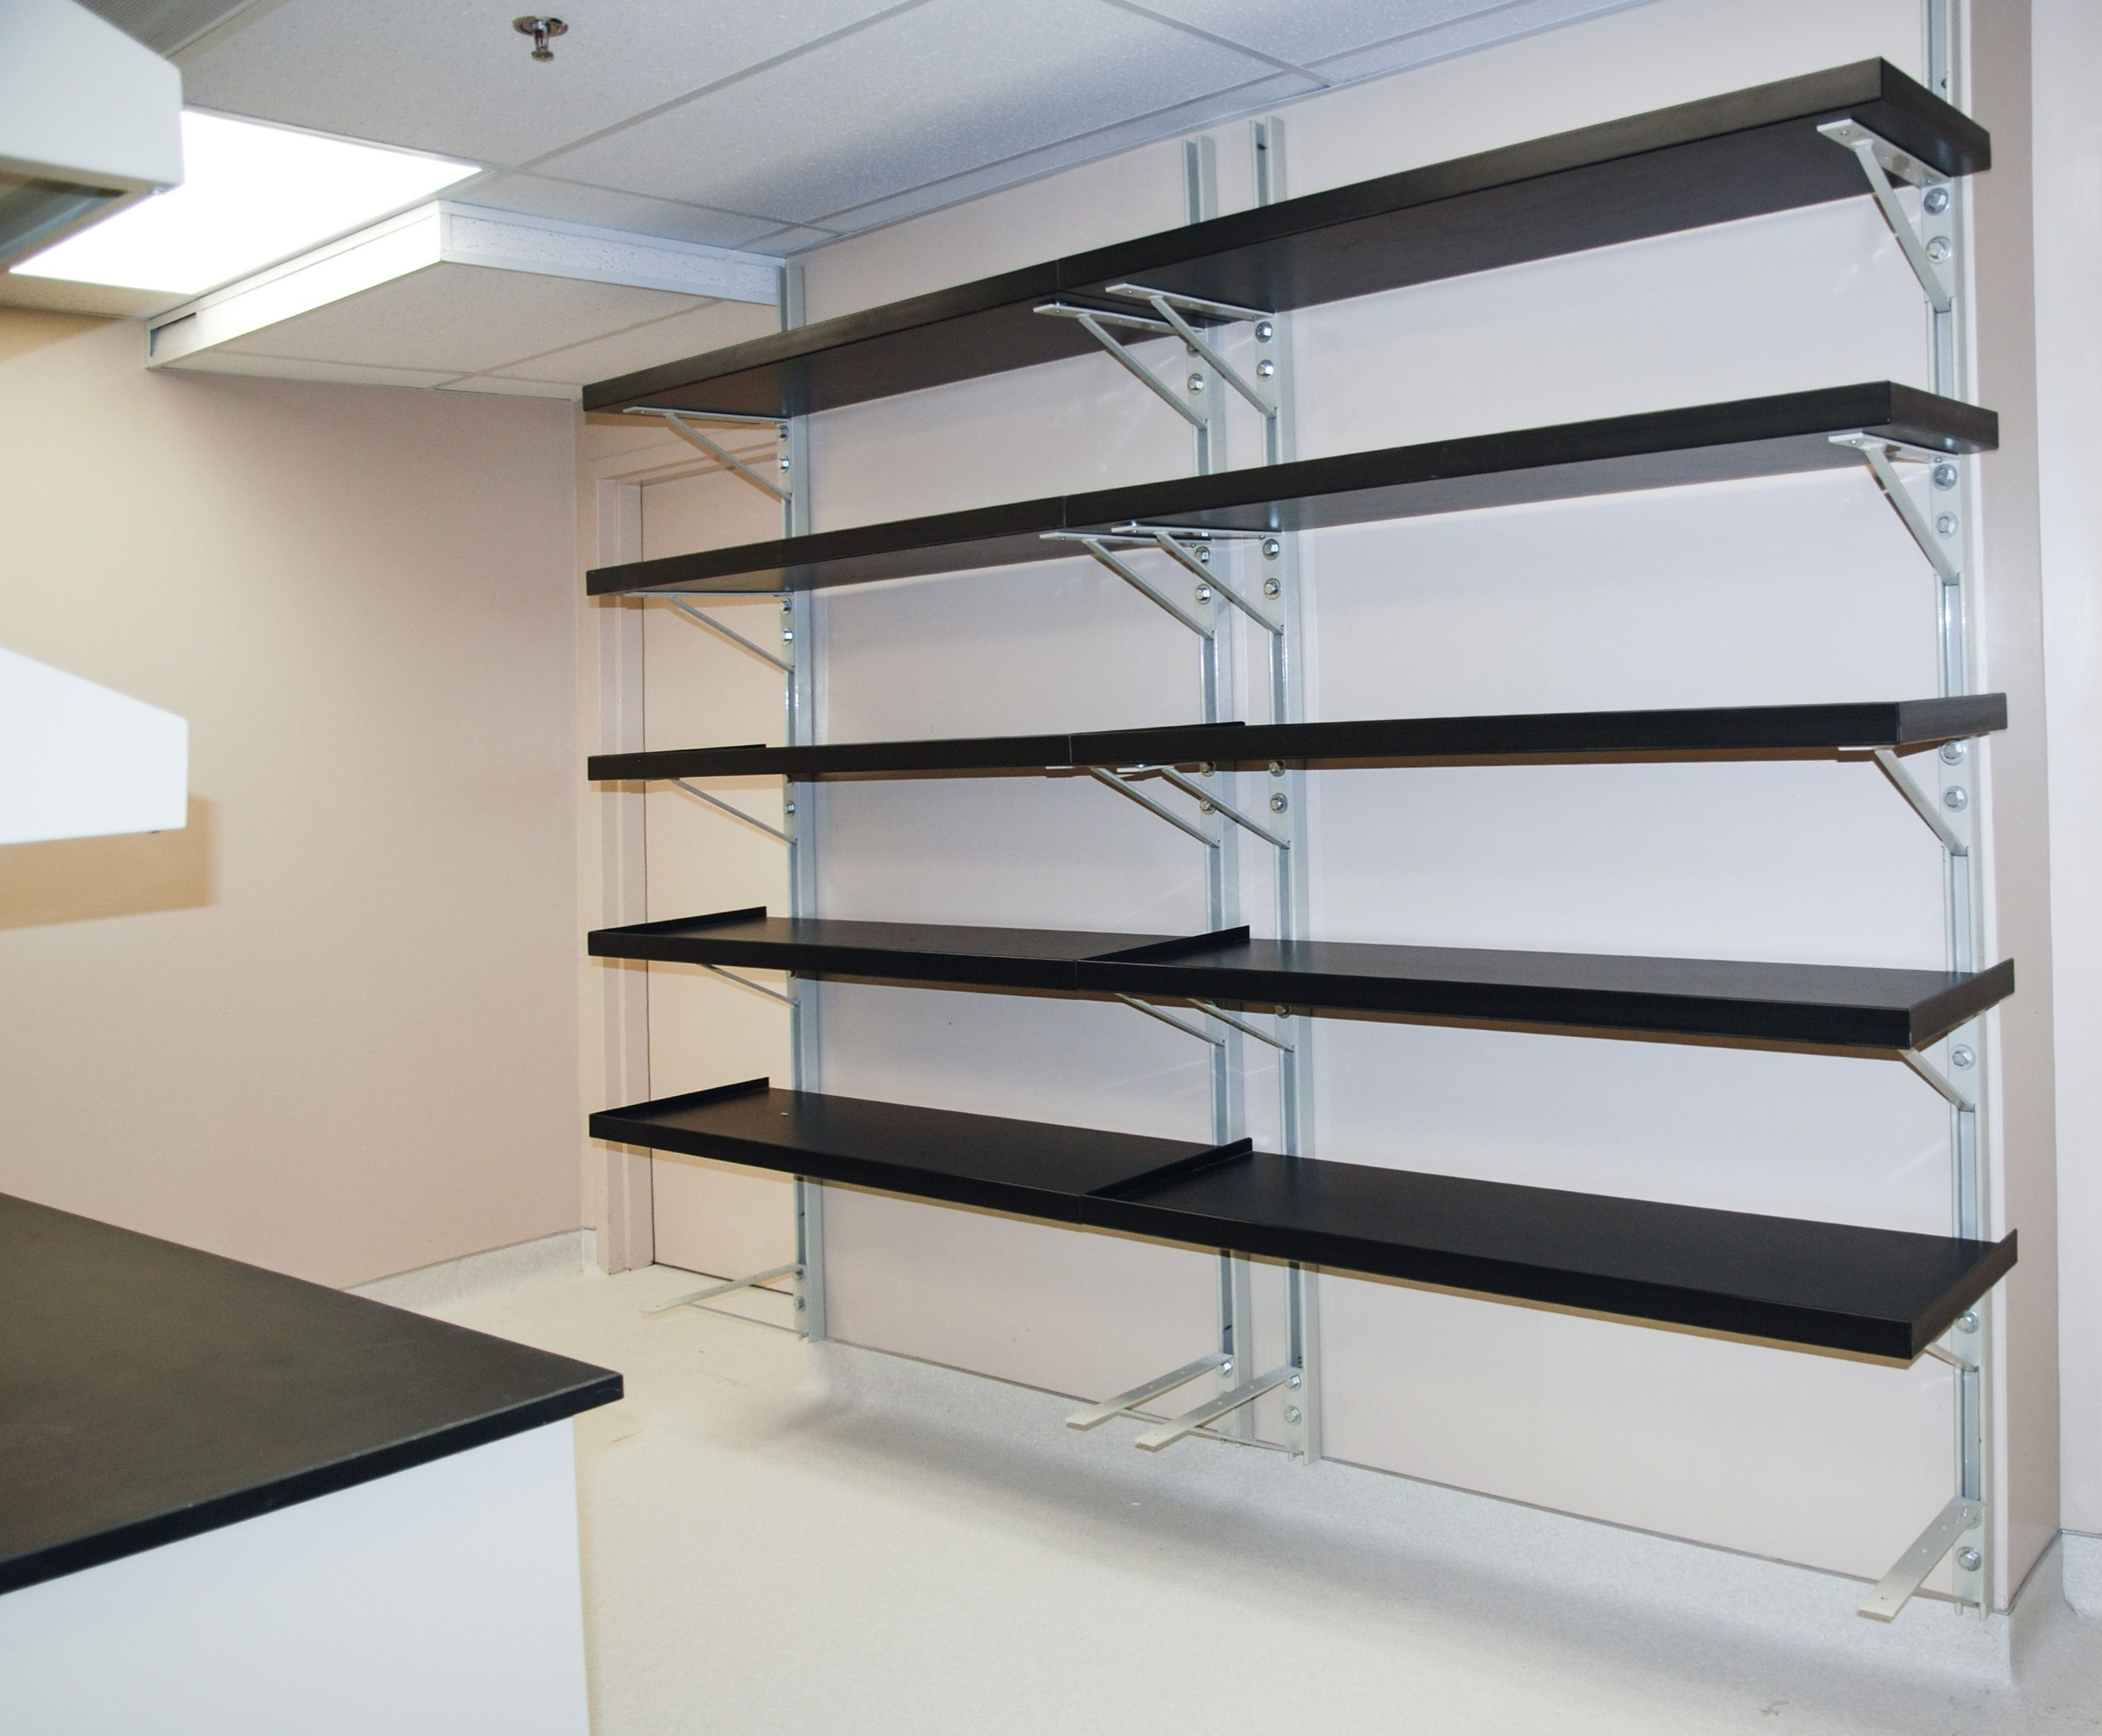 Wall Mounted Shelves For Heavy Books Garage Wall Mounted